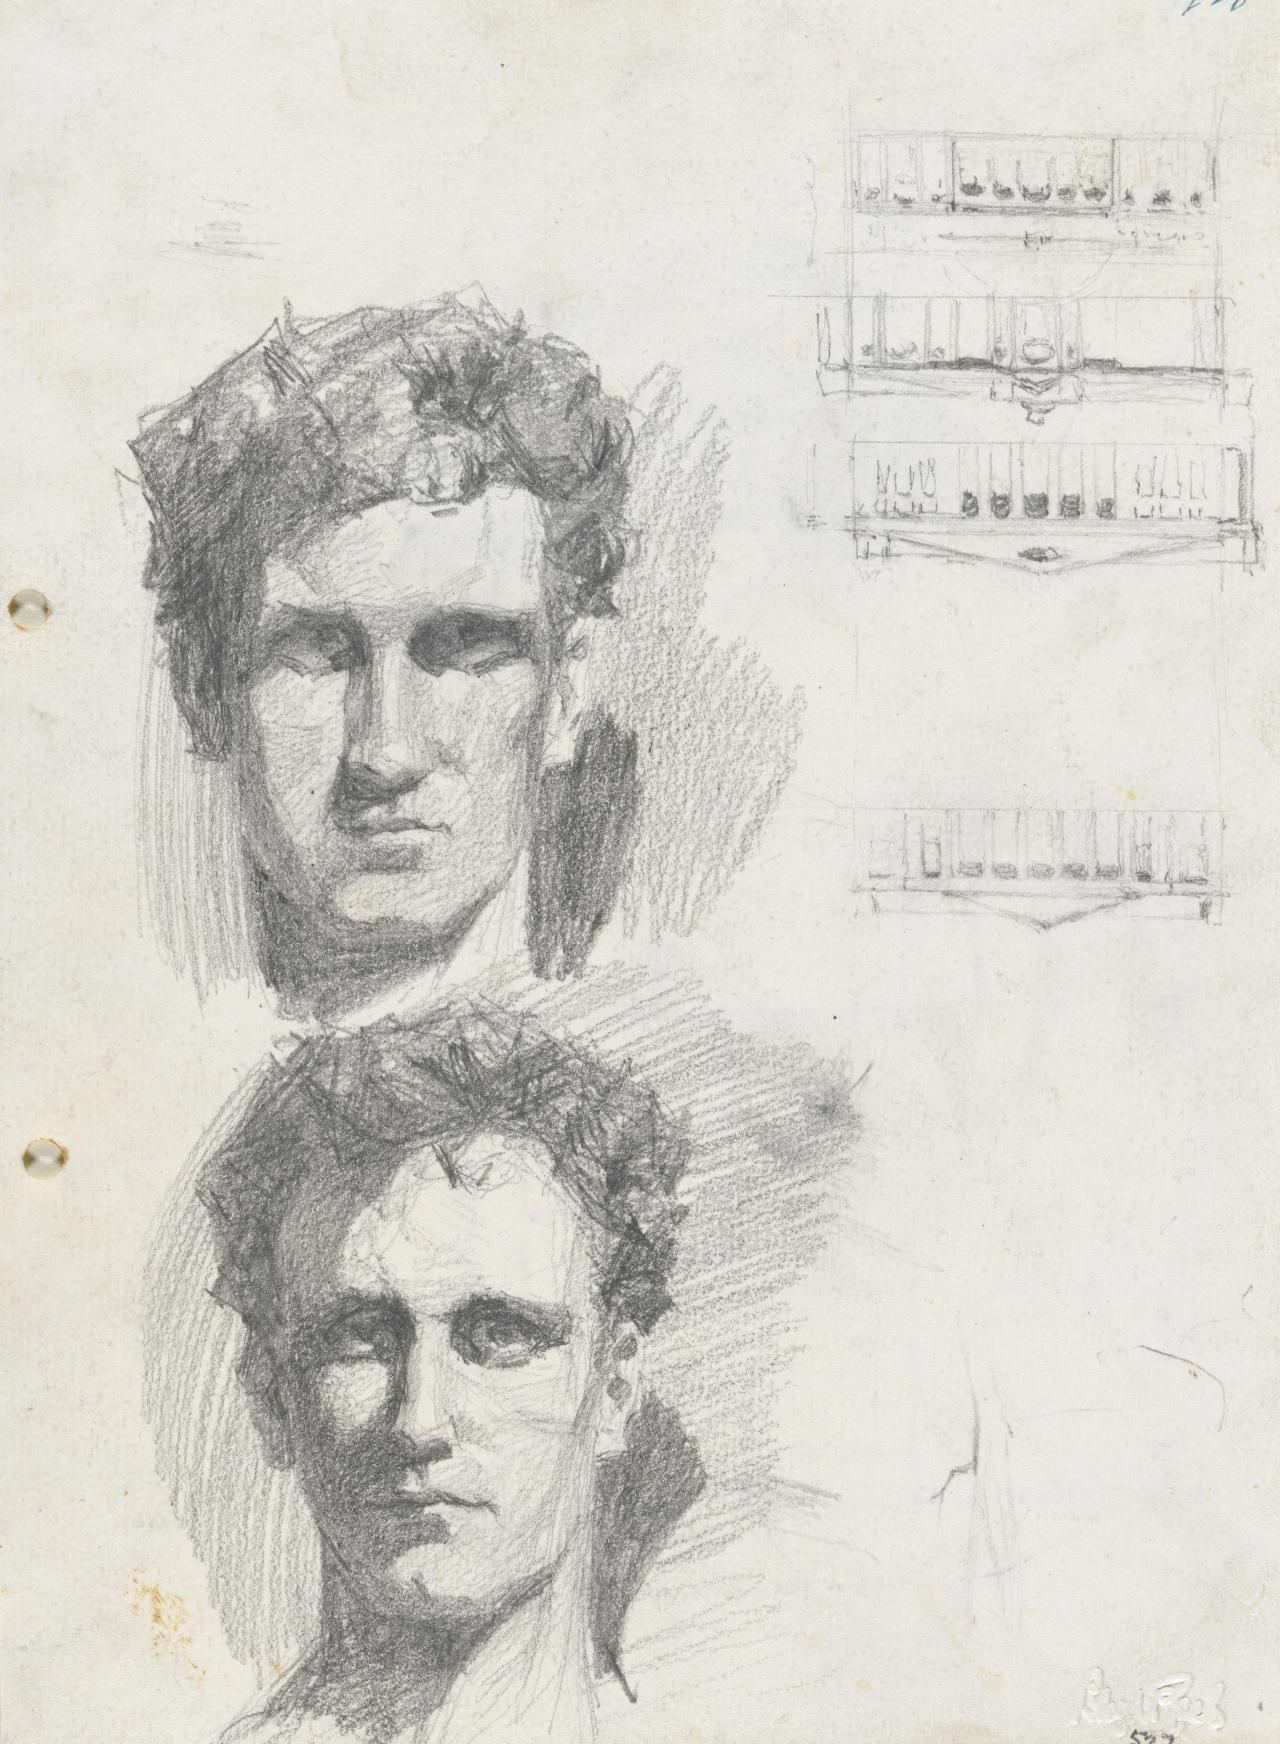 Two self portraits (and sketches of colonnaded facades)